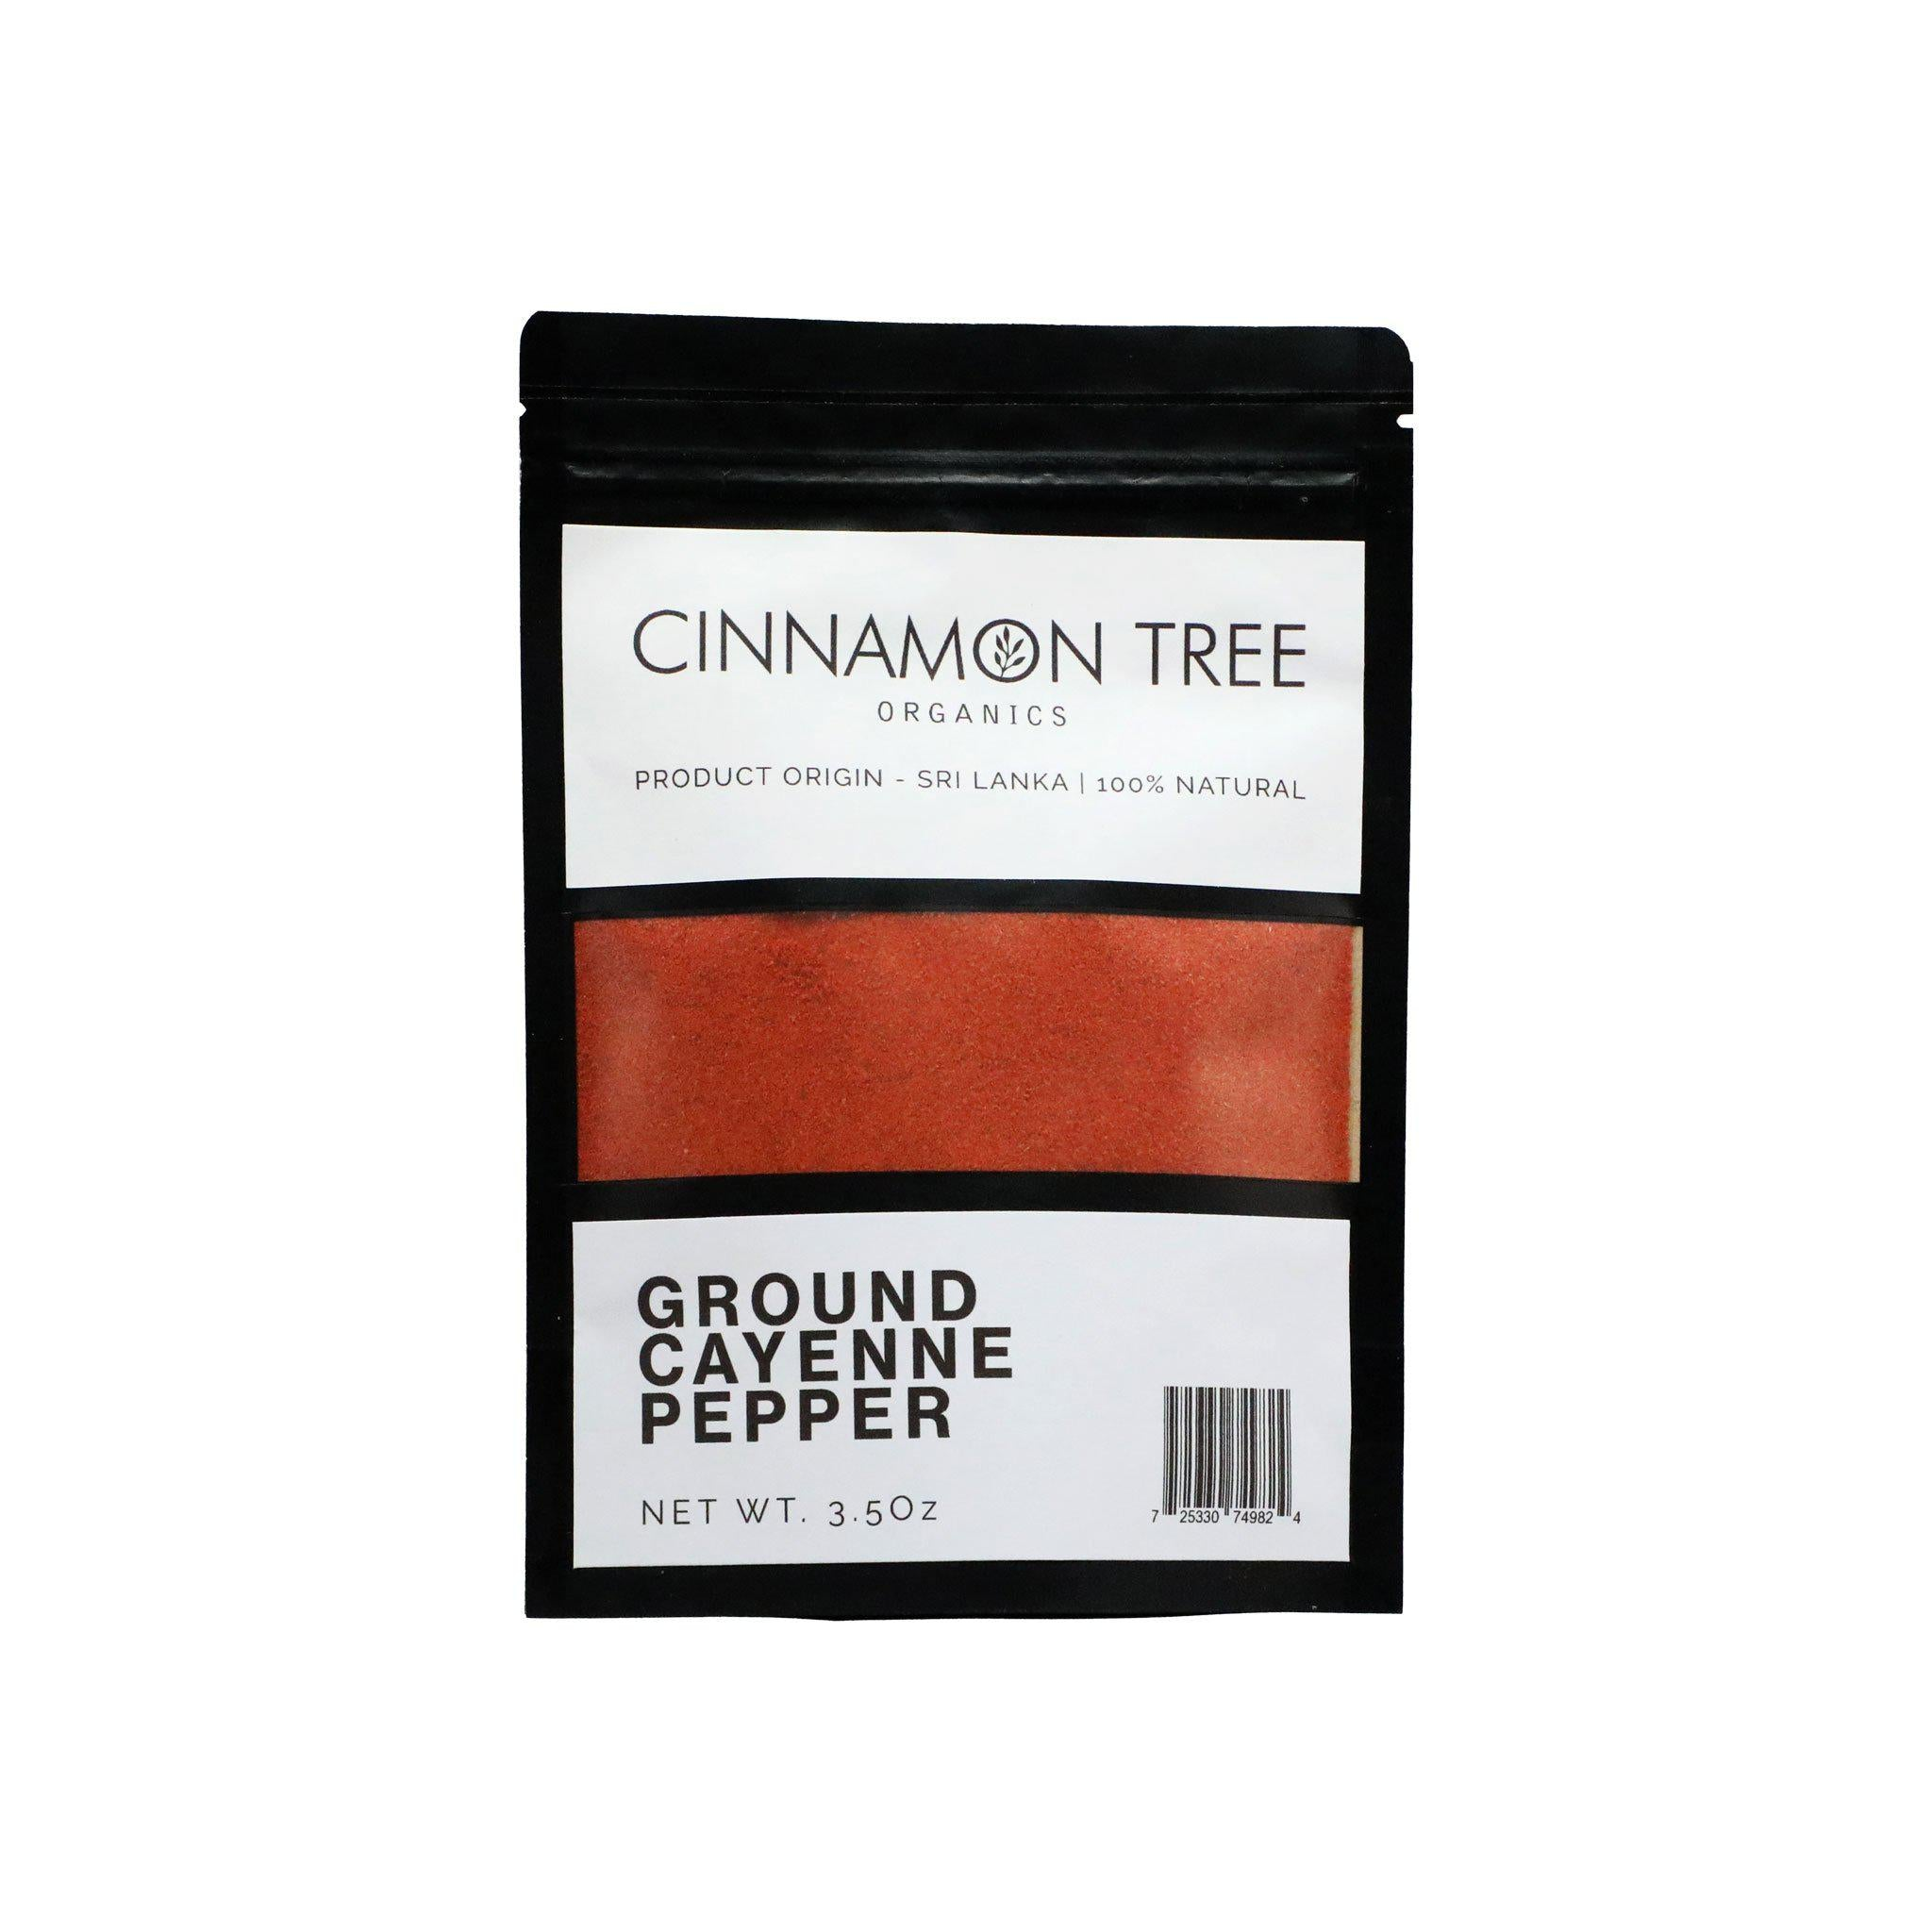 Cinnamon Tree Organics single origin ground cayenne pepper 3.5Oz package